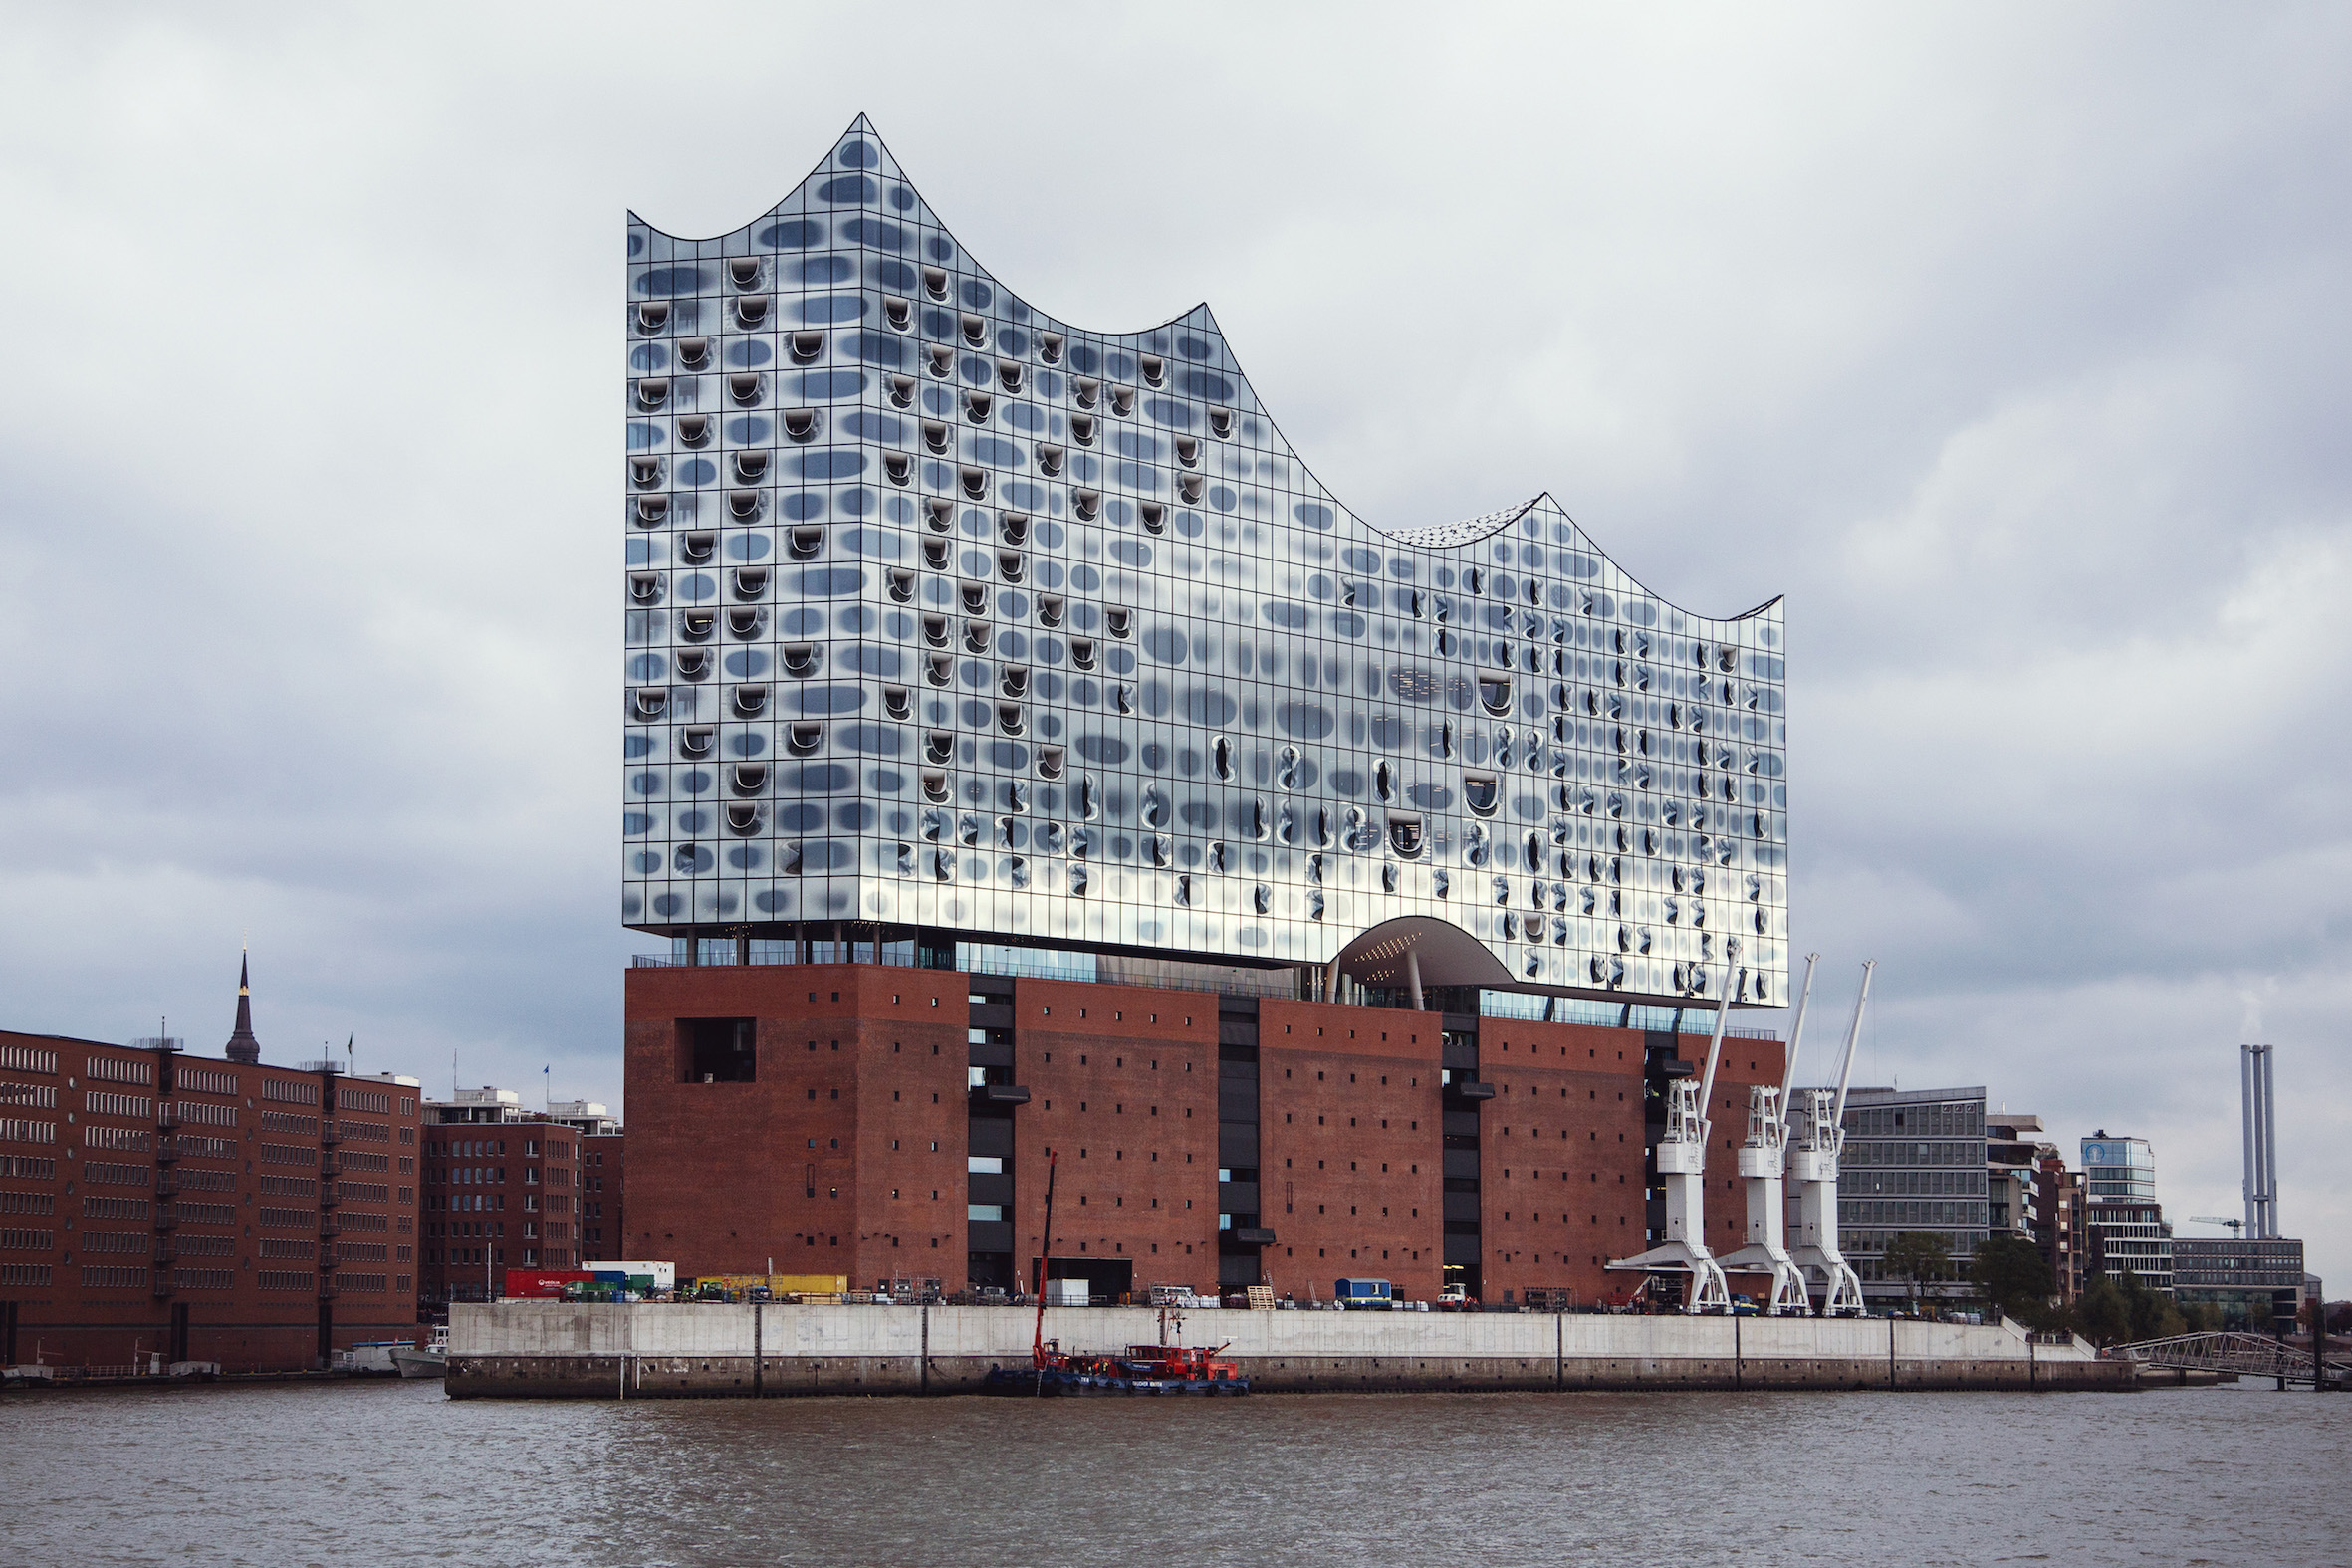 hamburg 39 s new elbphilharmonie is a glittering modern masterpiece. Black Bedroom Furniture Sets. Home Design Ideas